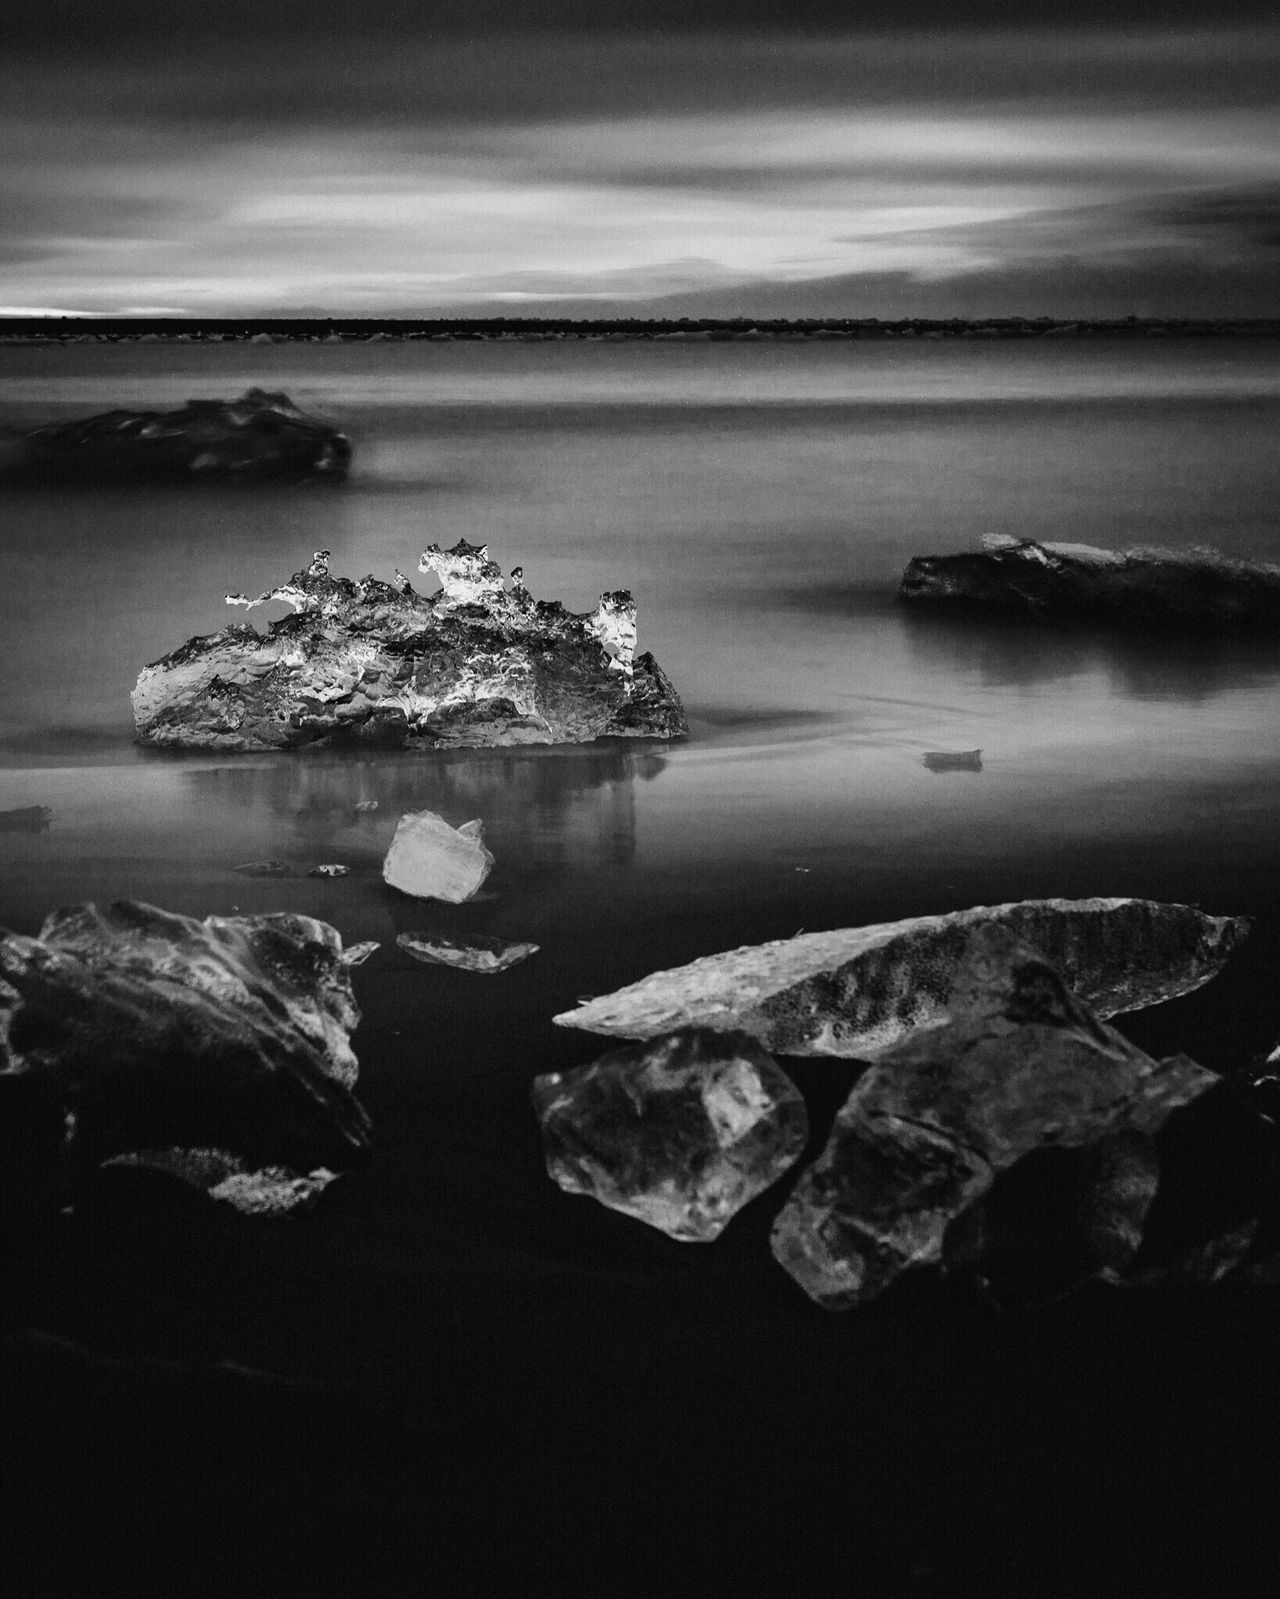 Ocean Ice Sea Sea And Sky Iceland Nature Exploring Photo Photography Photooftheday Check This Out Eye Em Nature Lover EyeEm Best Shots EyeEm Gallery OpenEdit Traveling Light Beautiful Blackandwhite Black & White Blackandwhite Photography Blackandwhitephotography Monochrome Noir Et Blanc Mono